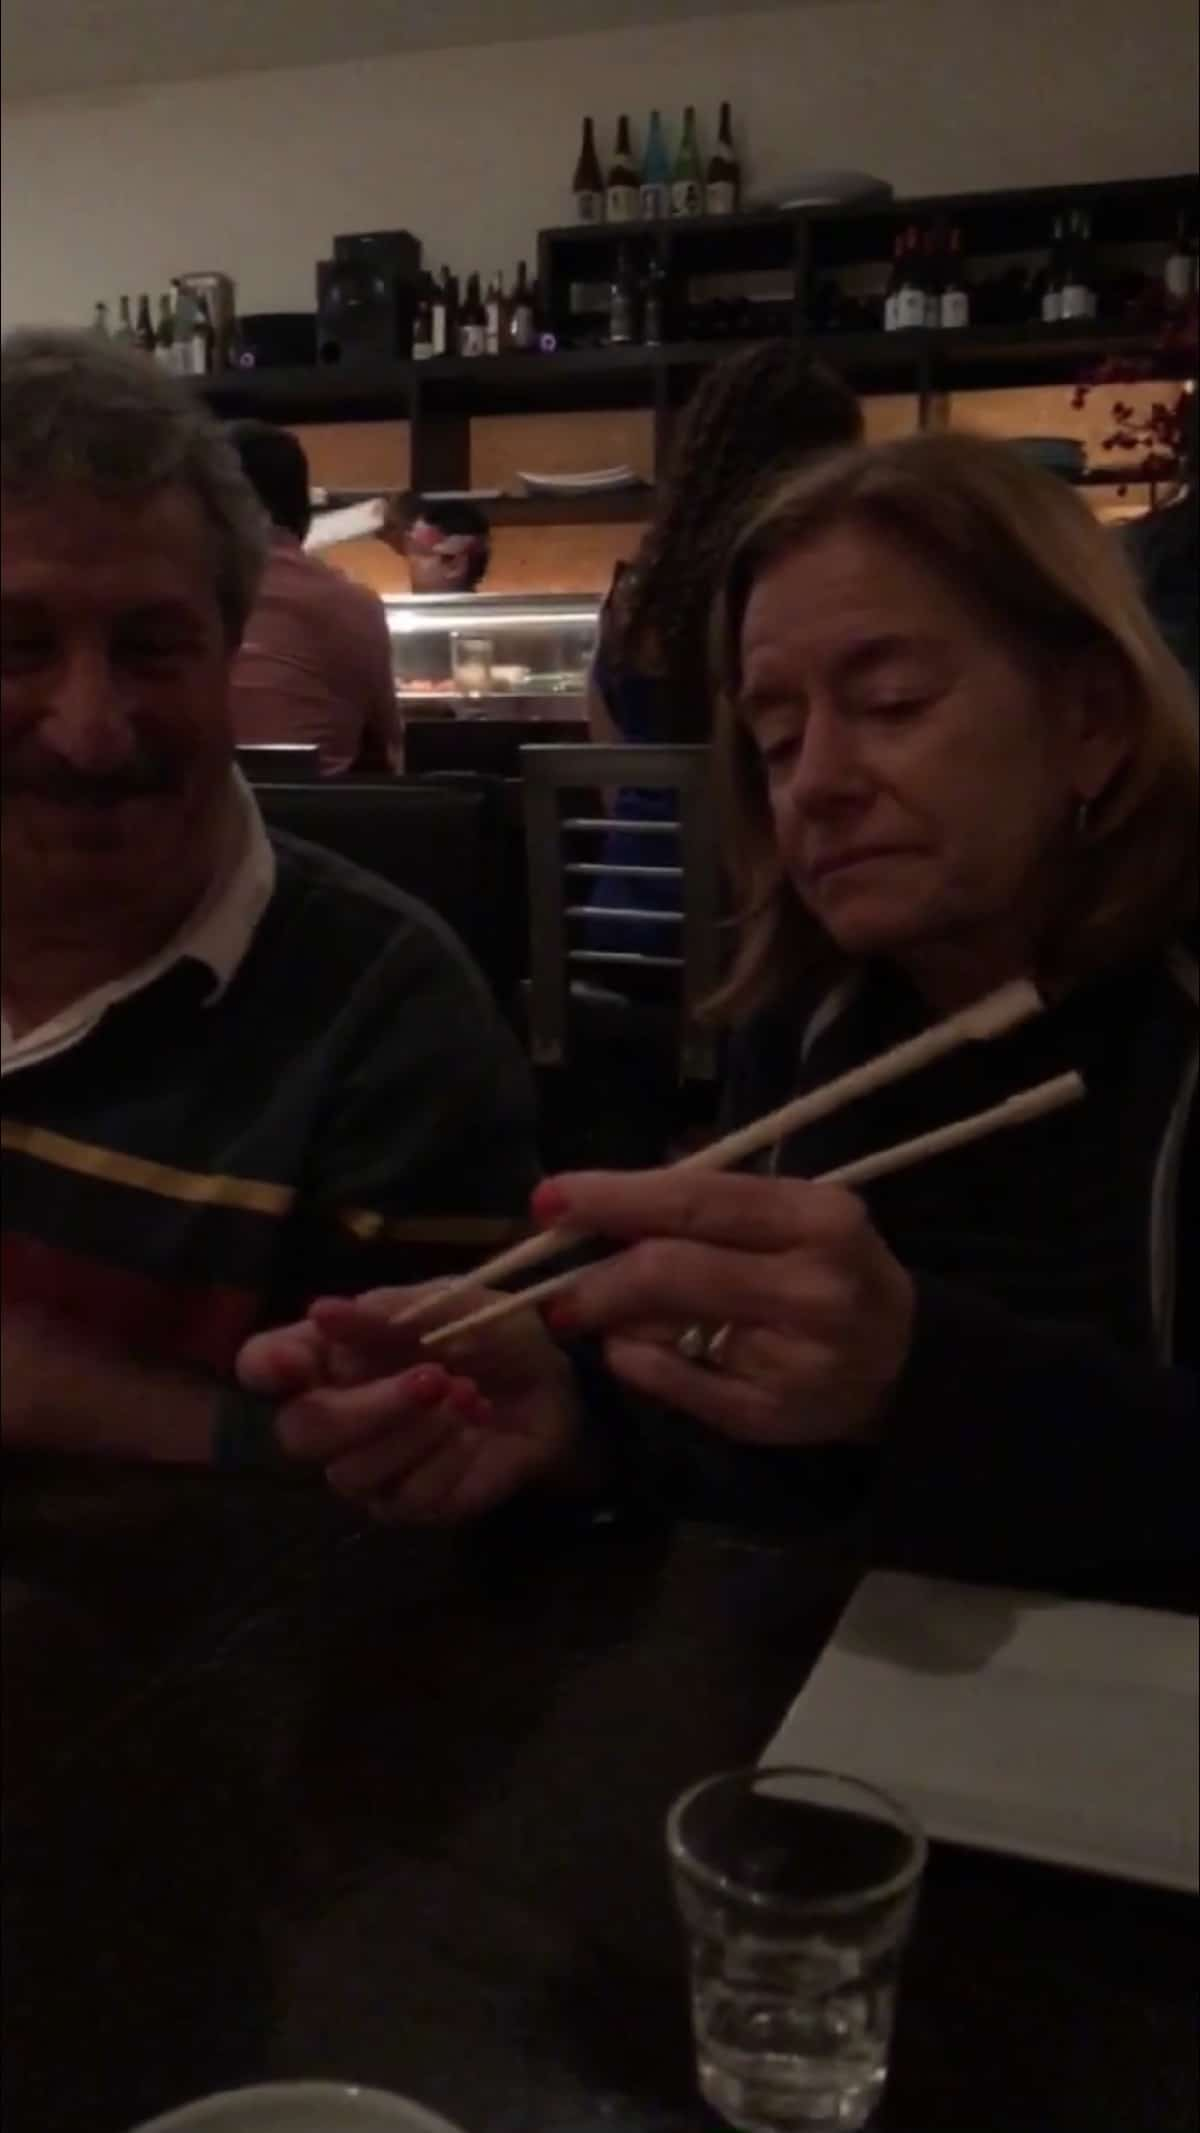 Lady showing a man how to use chopsticks